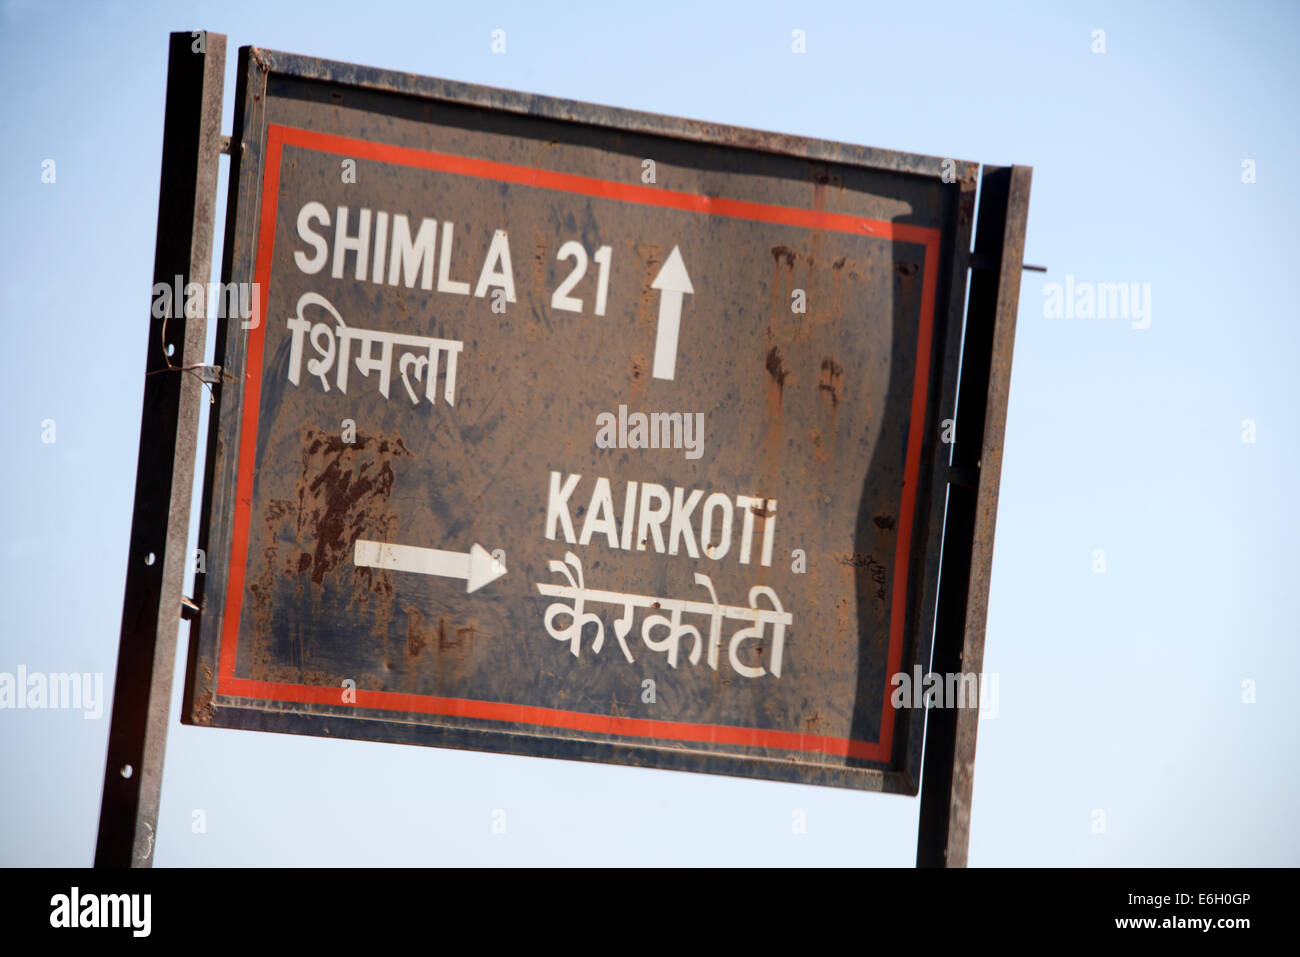 An India road sign in the Himalayan foothills, Himachal Pradesh,India - Stock Image